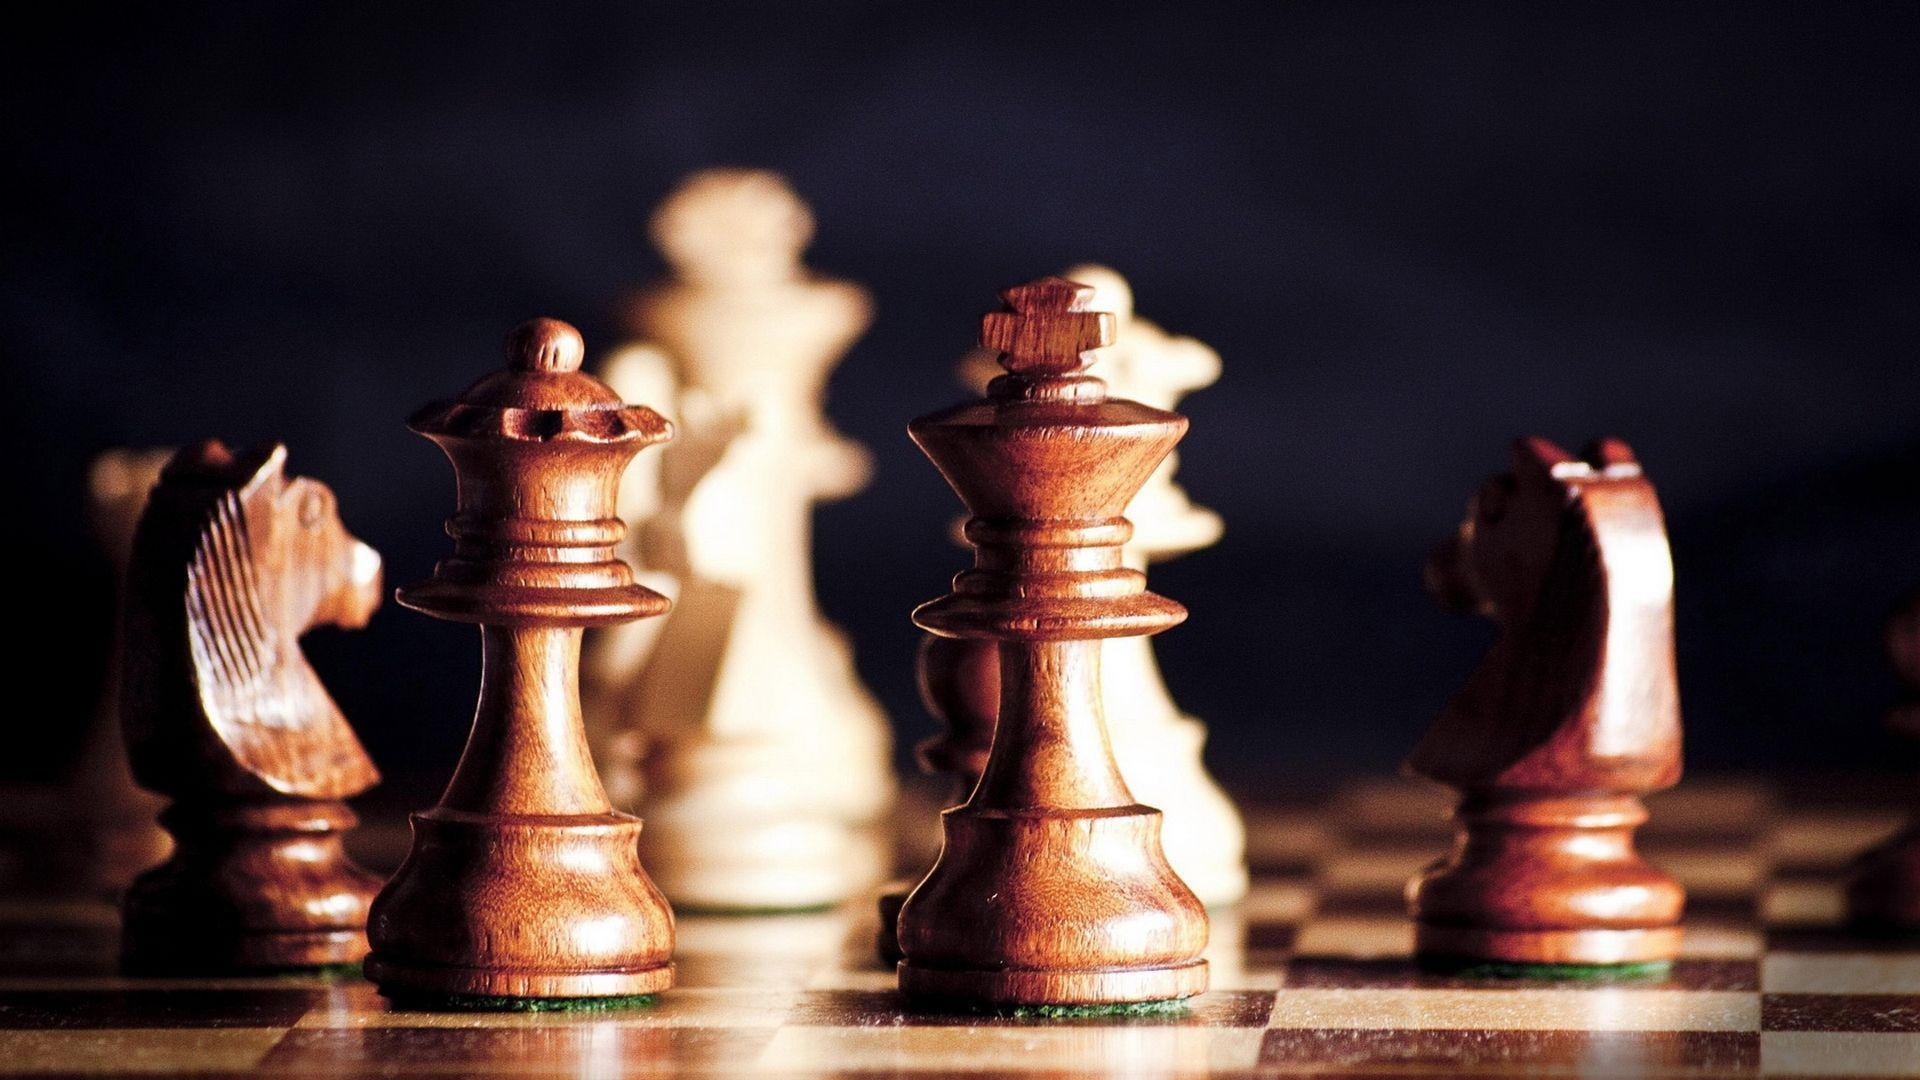 Cool Chess Wallpapers 23569 1920x1080 px ~ HDWallSource